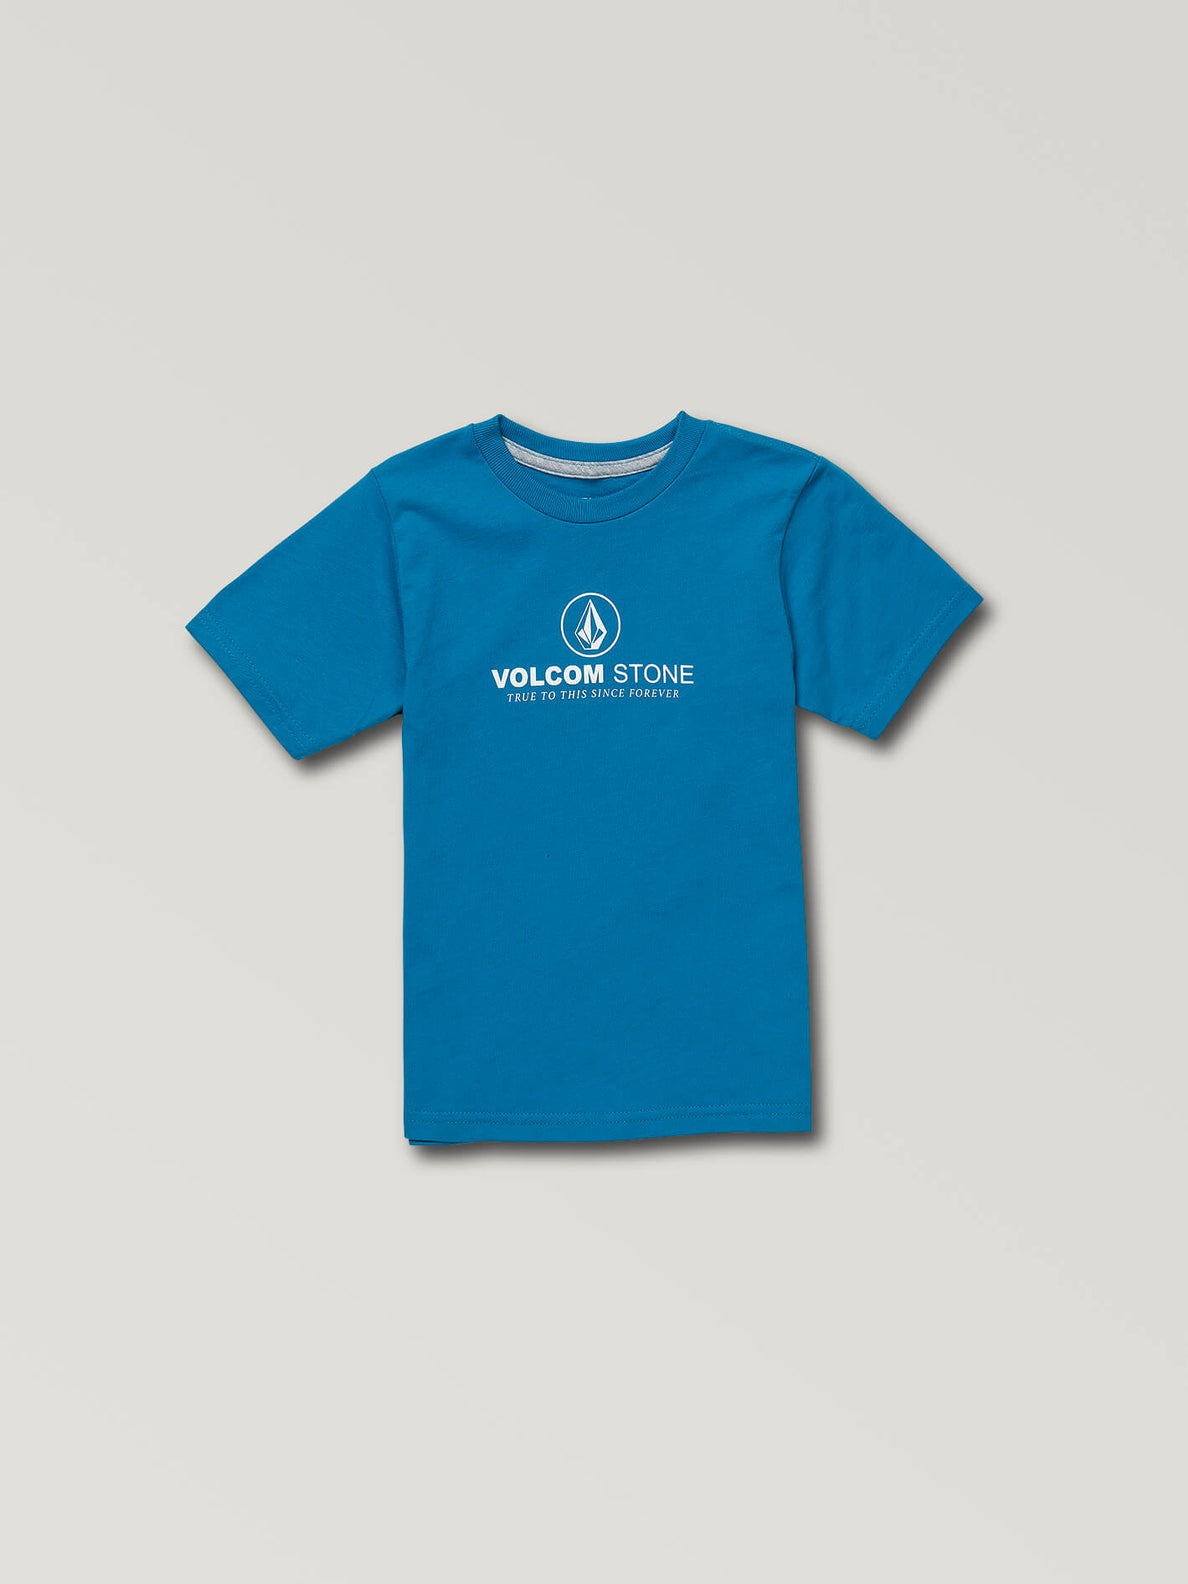 Little Boys Super Clean Short Sleeve Tee In Bright Blue, Front View